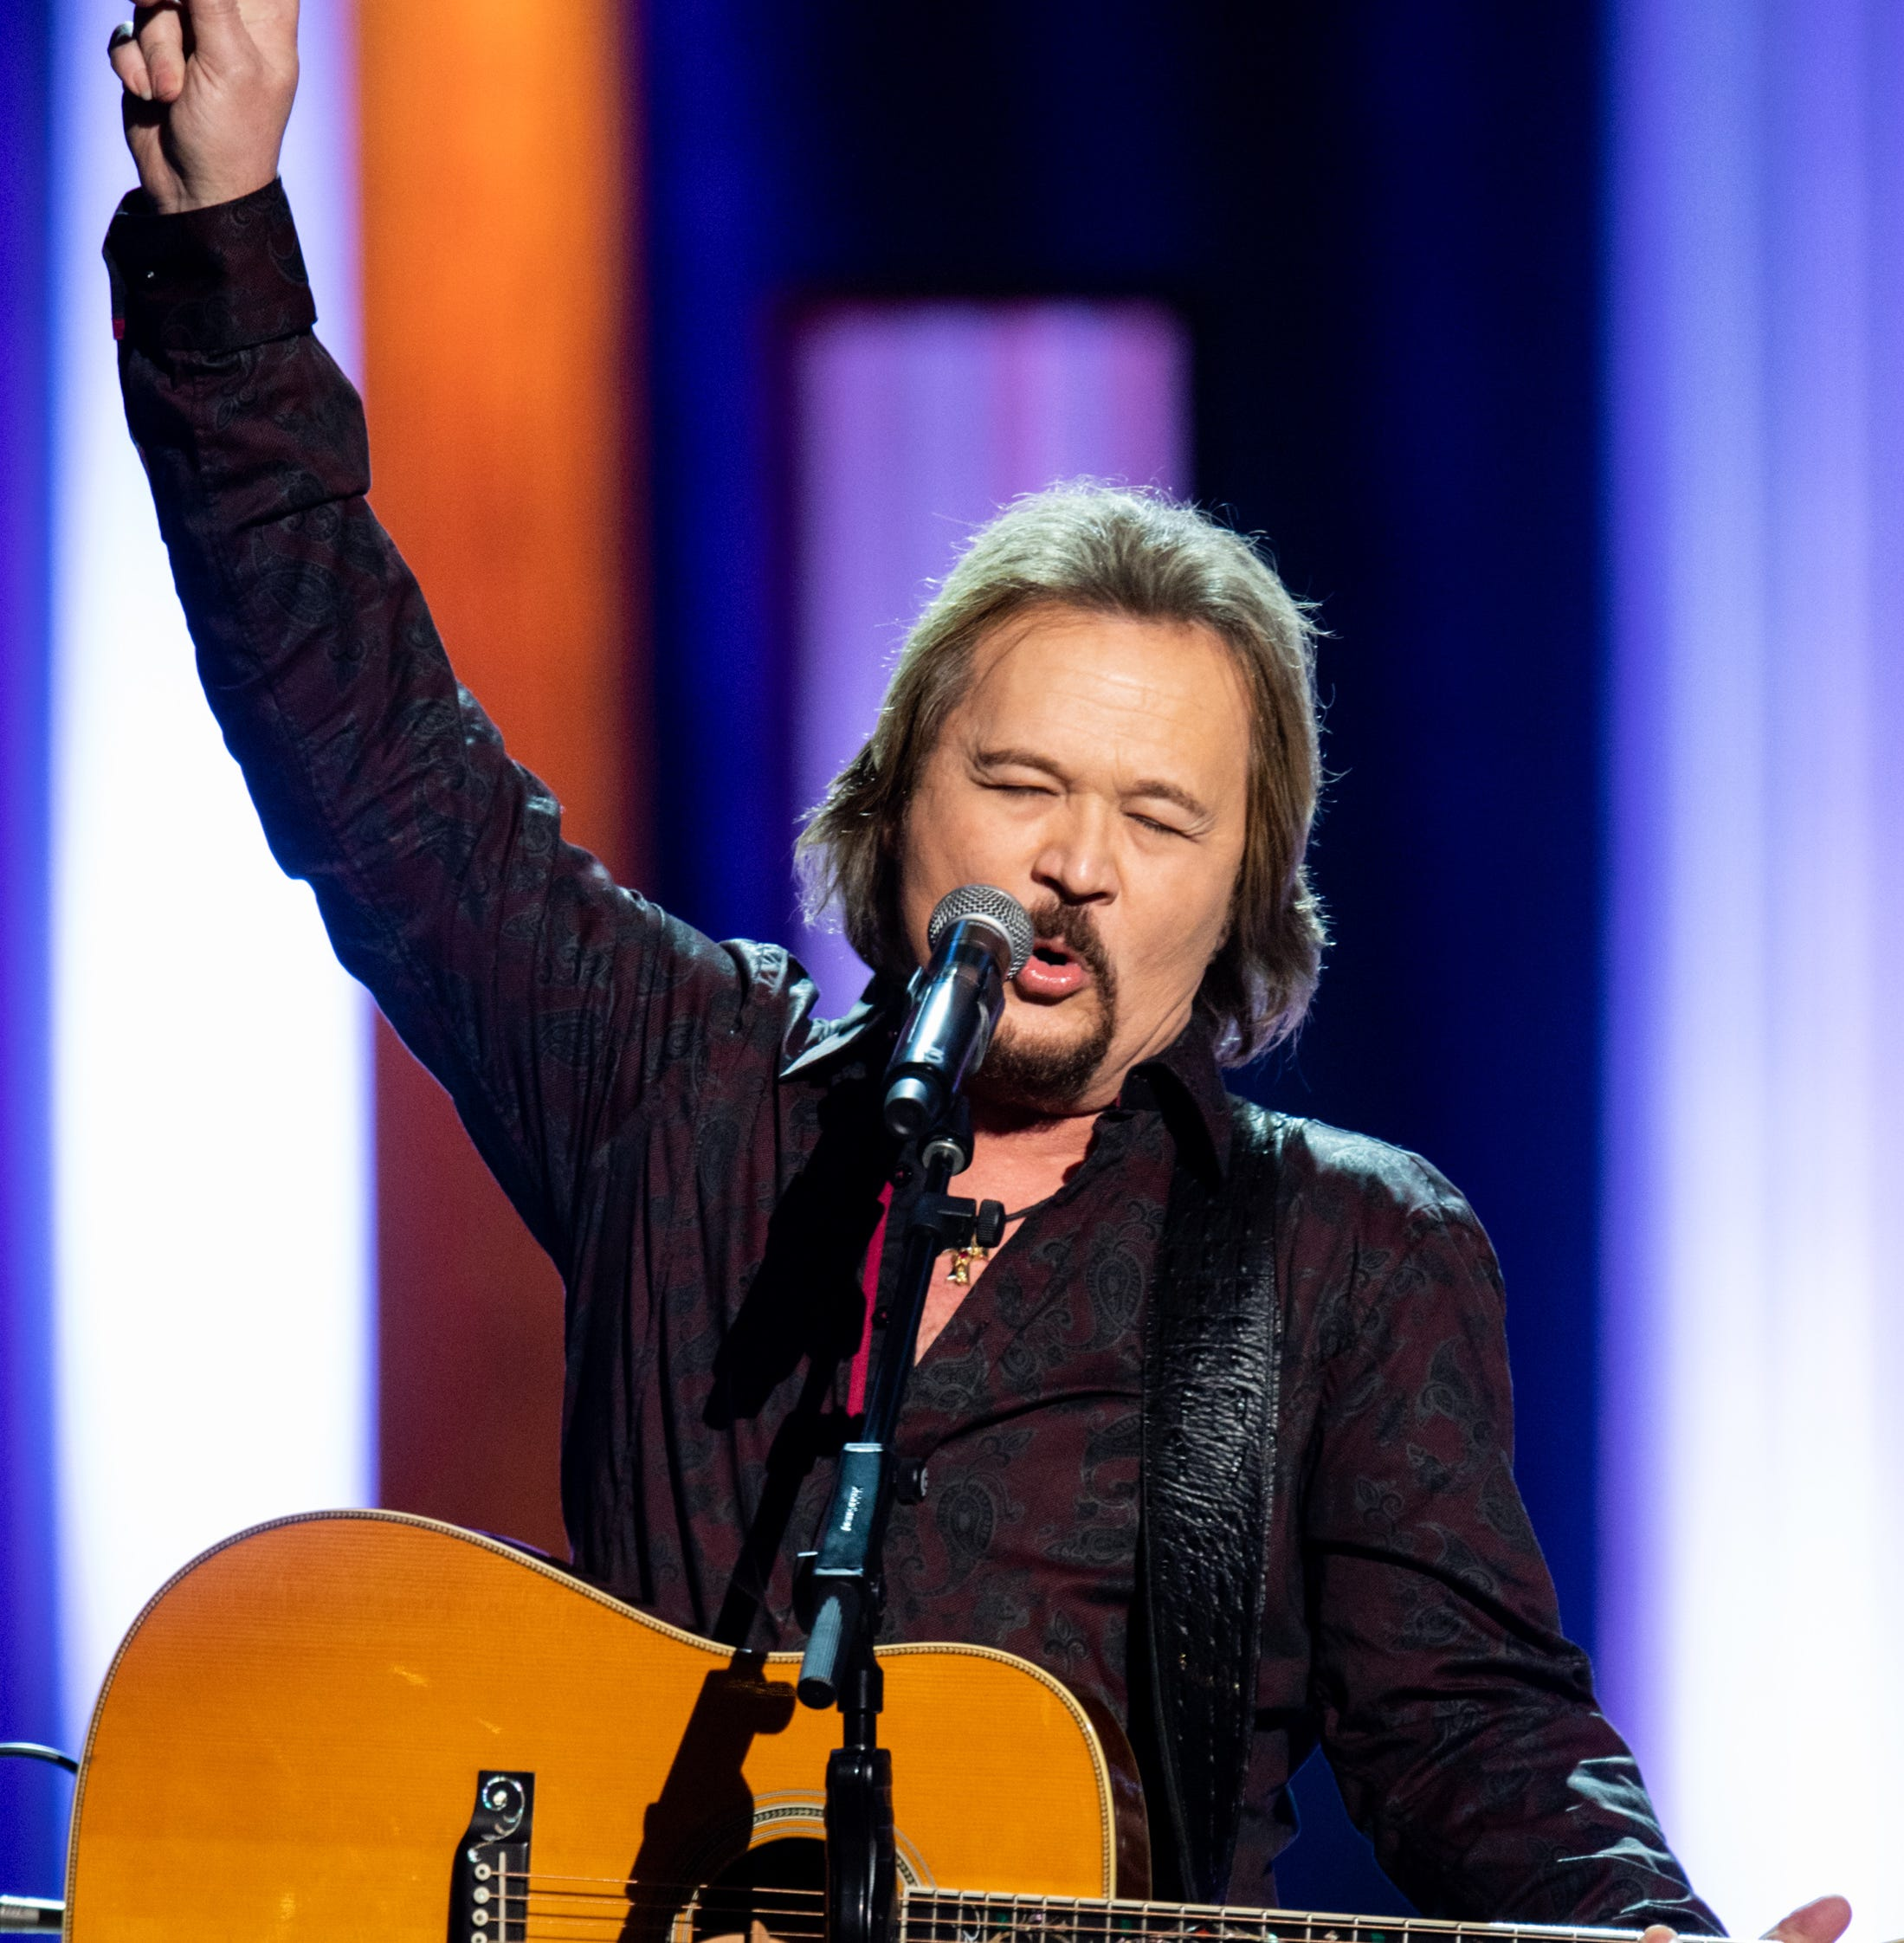 Country music star Travis Tritt's bus sideswiped while avoiding fatal wreck in SC